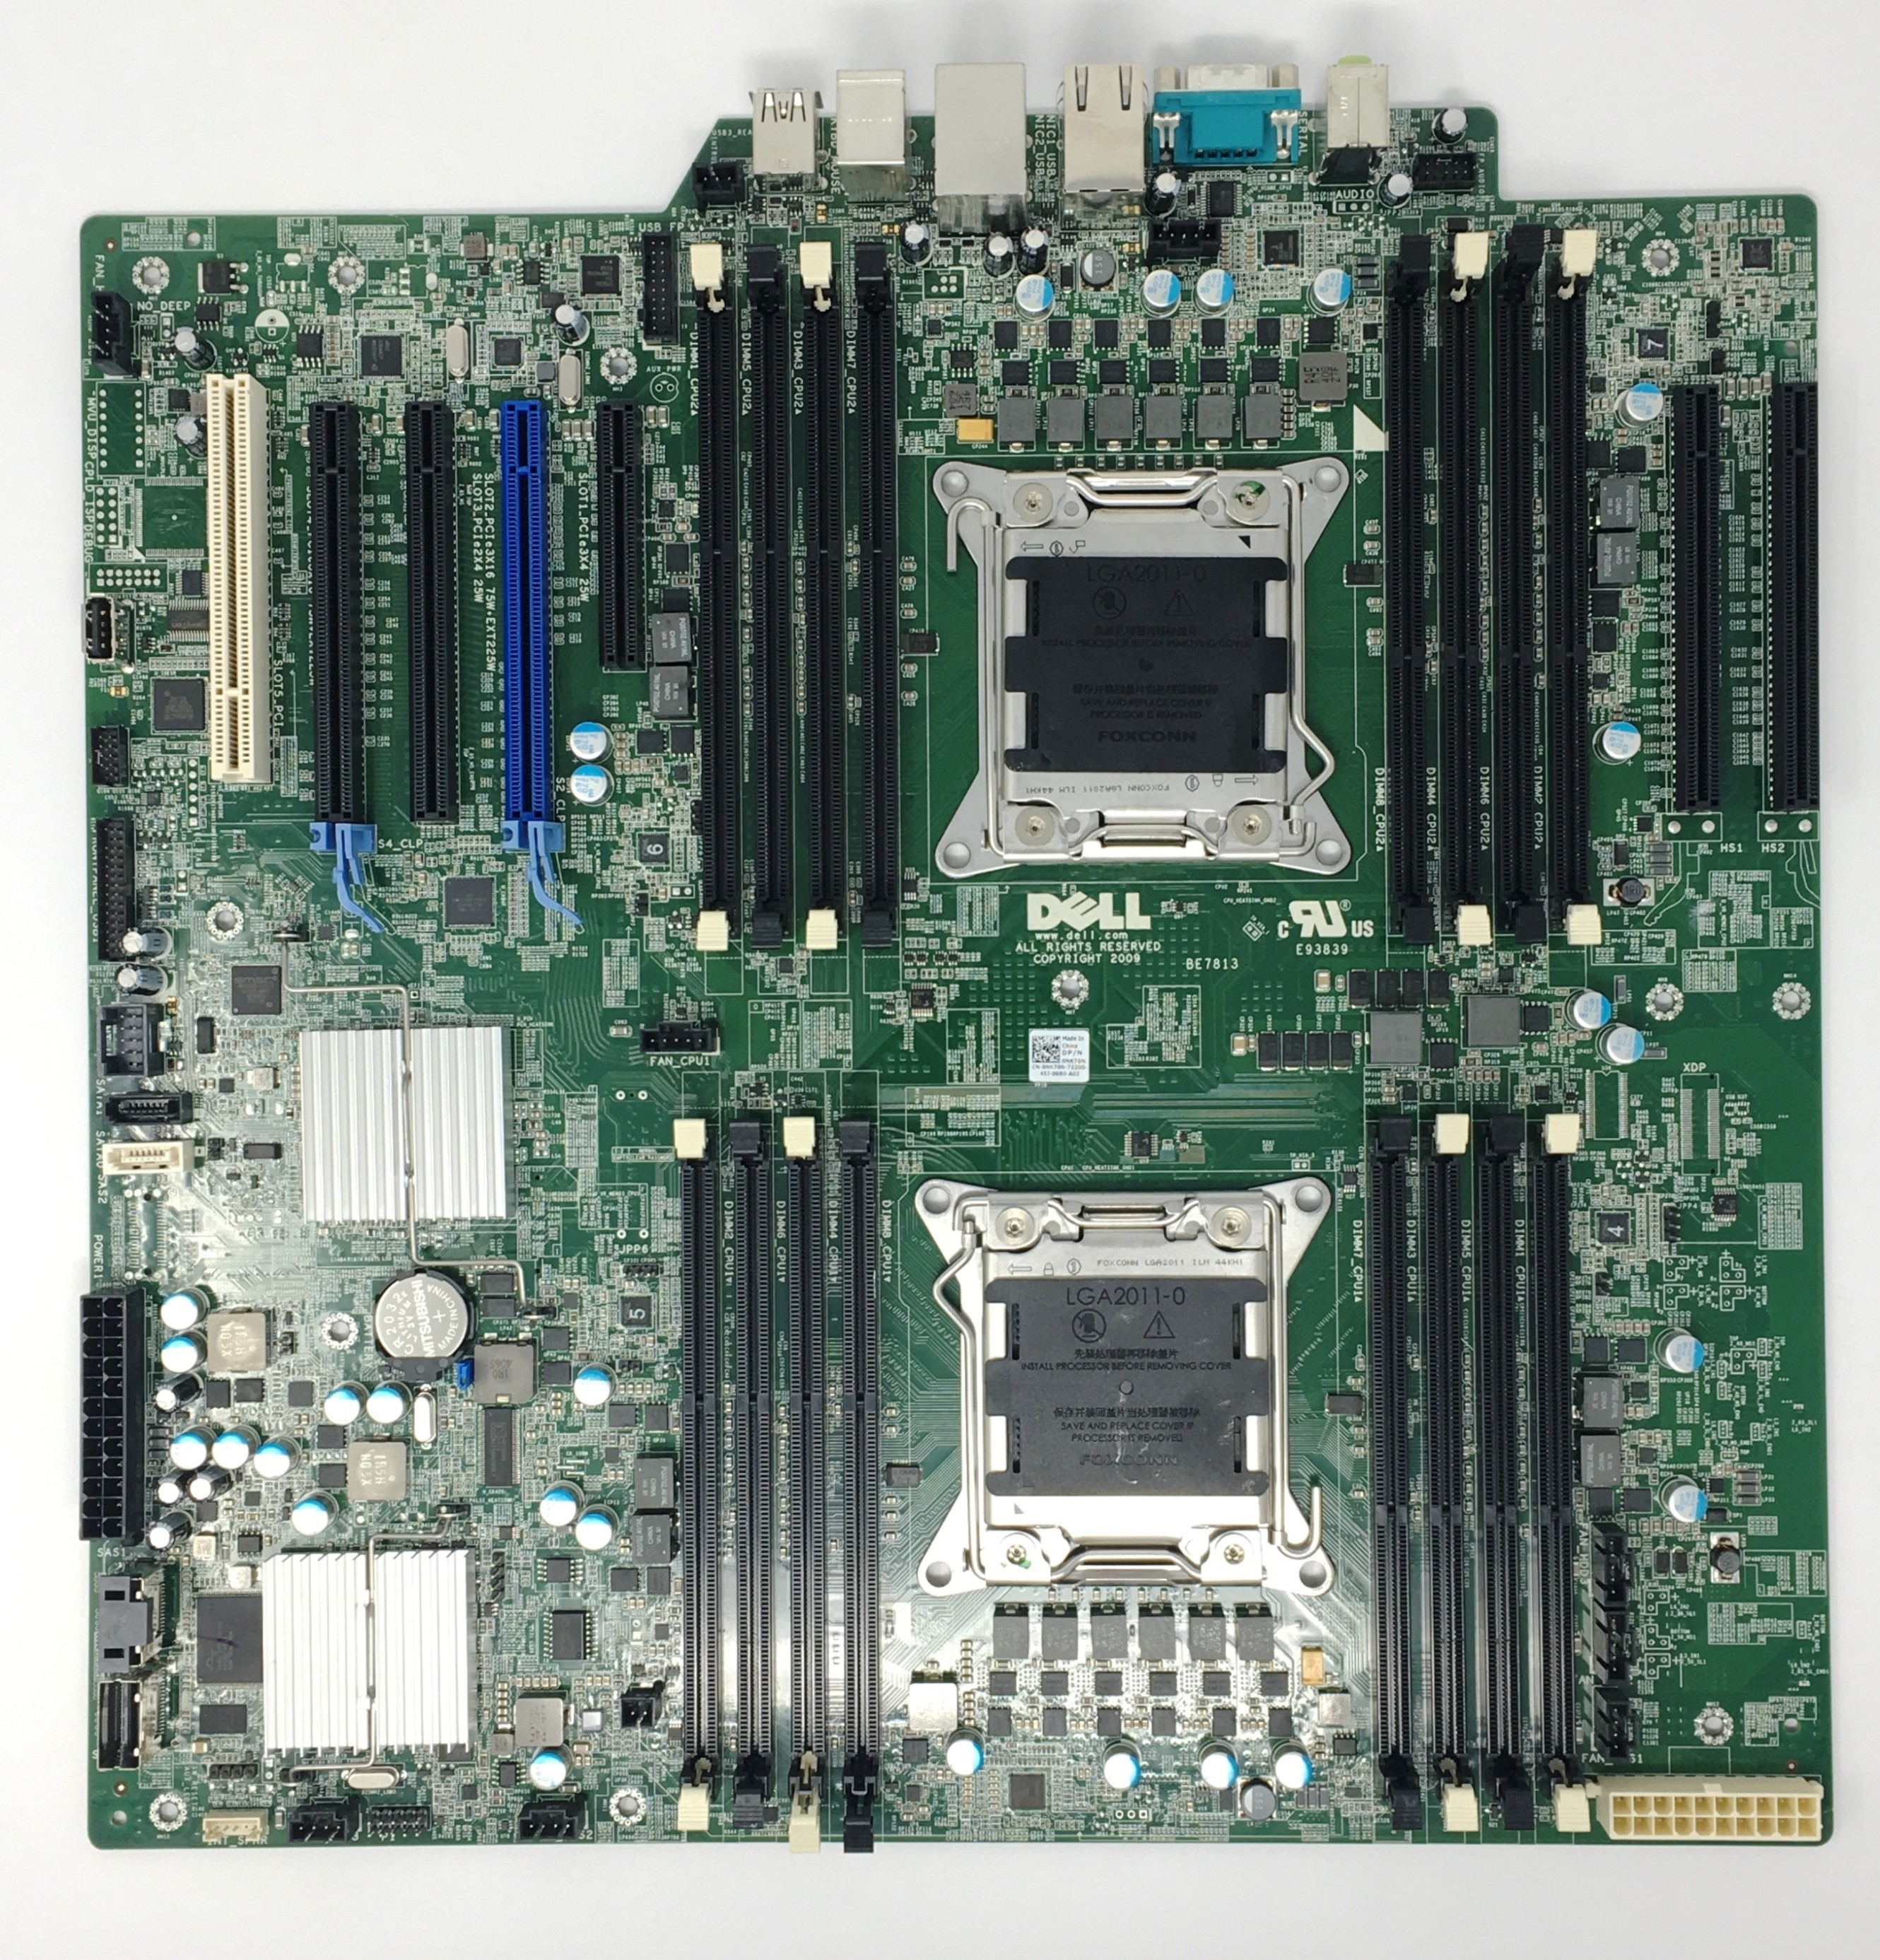 Dell Precision T7610 Workstation Dual Intel LGA2011 System Mother Board (NK70N)